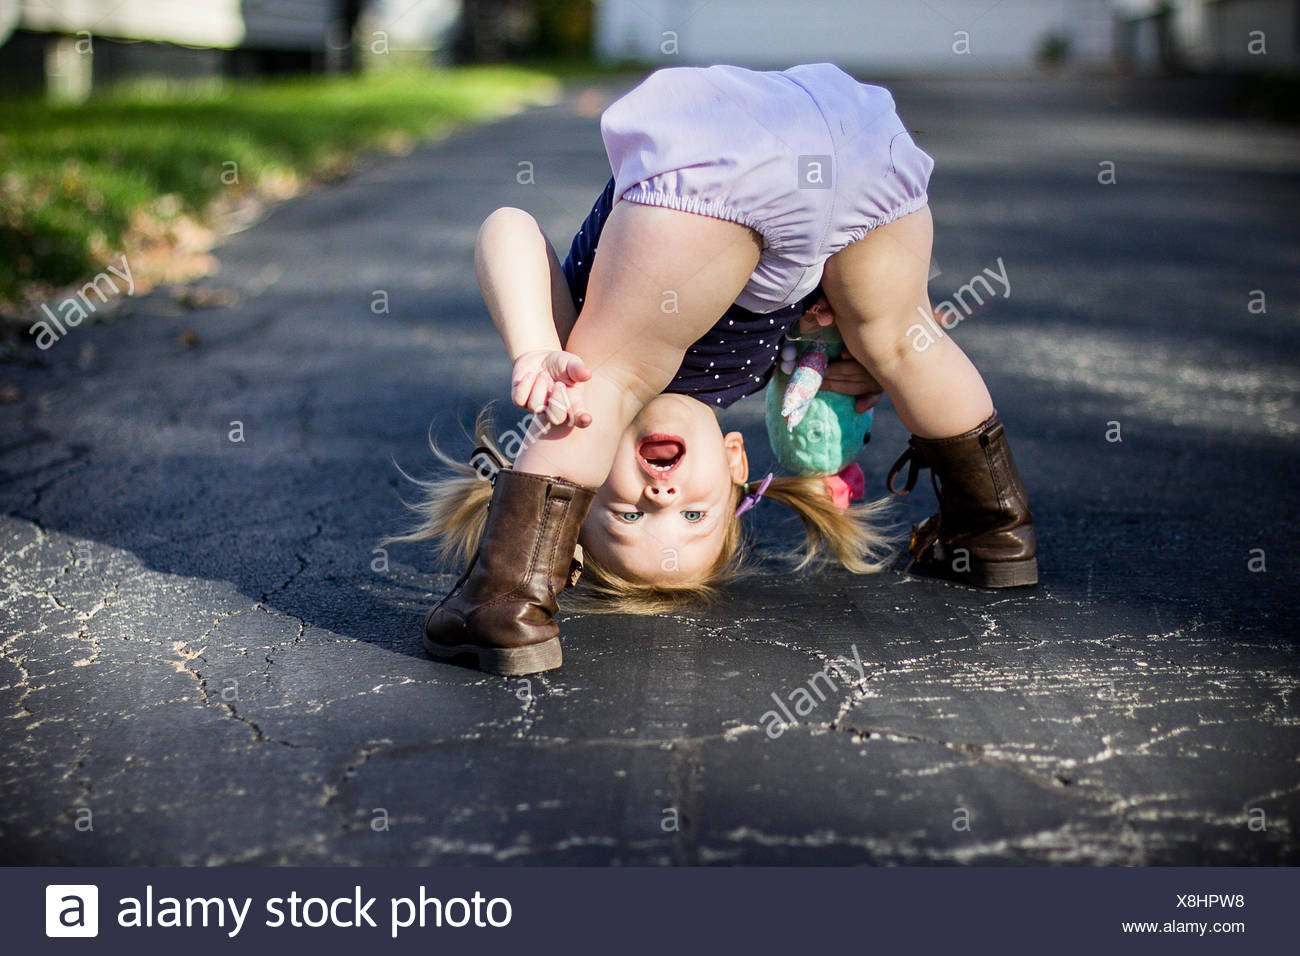 Girl bending over and looking through her legs upside down - Stock Image